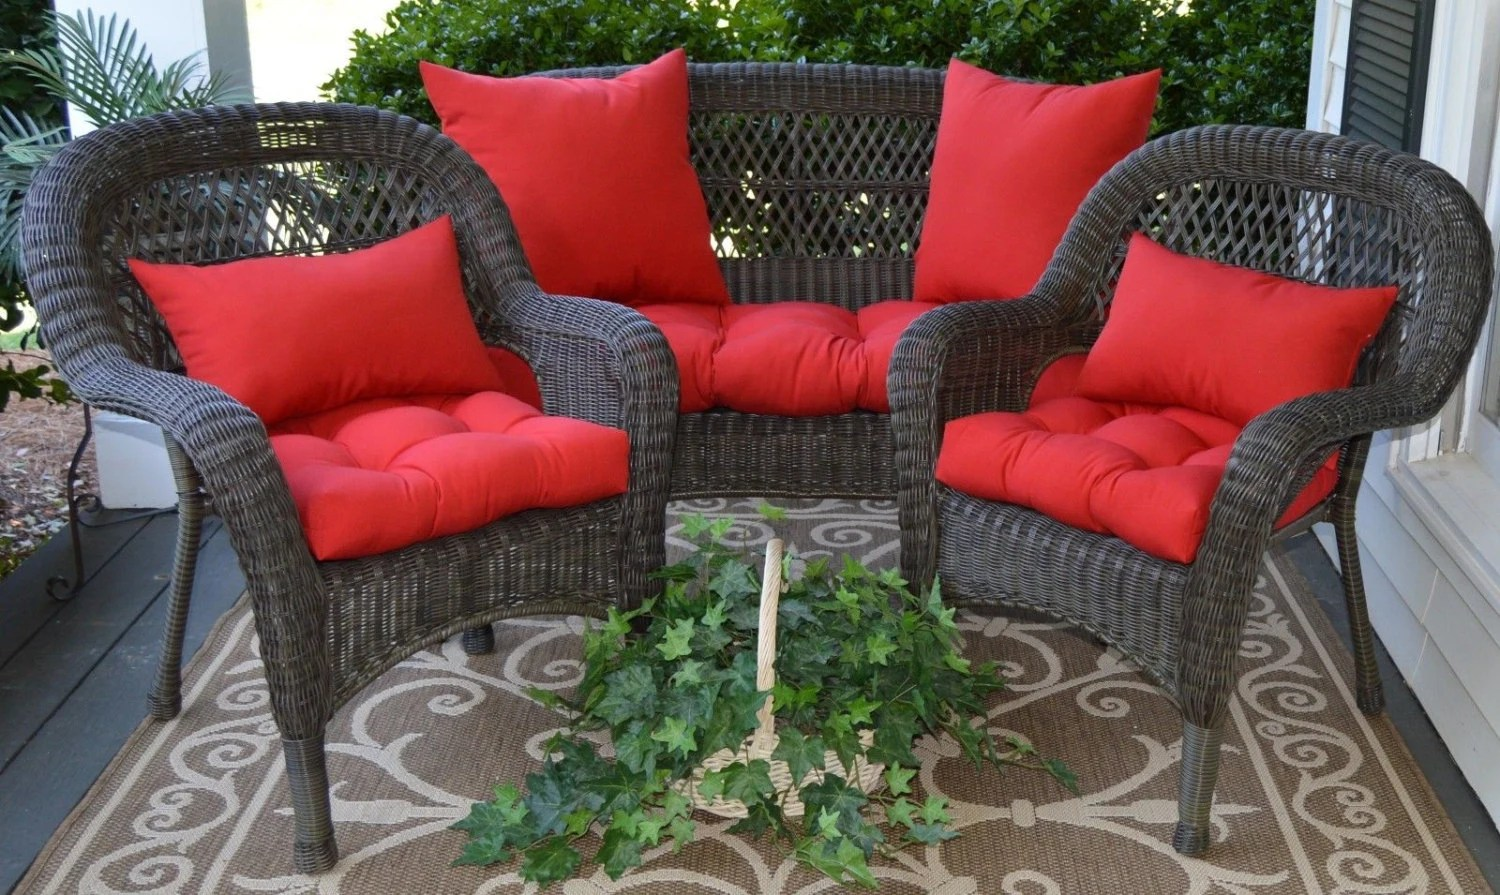 Outdoor Wicker Cushion And Pillow 7 Pc. Set Solid Red